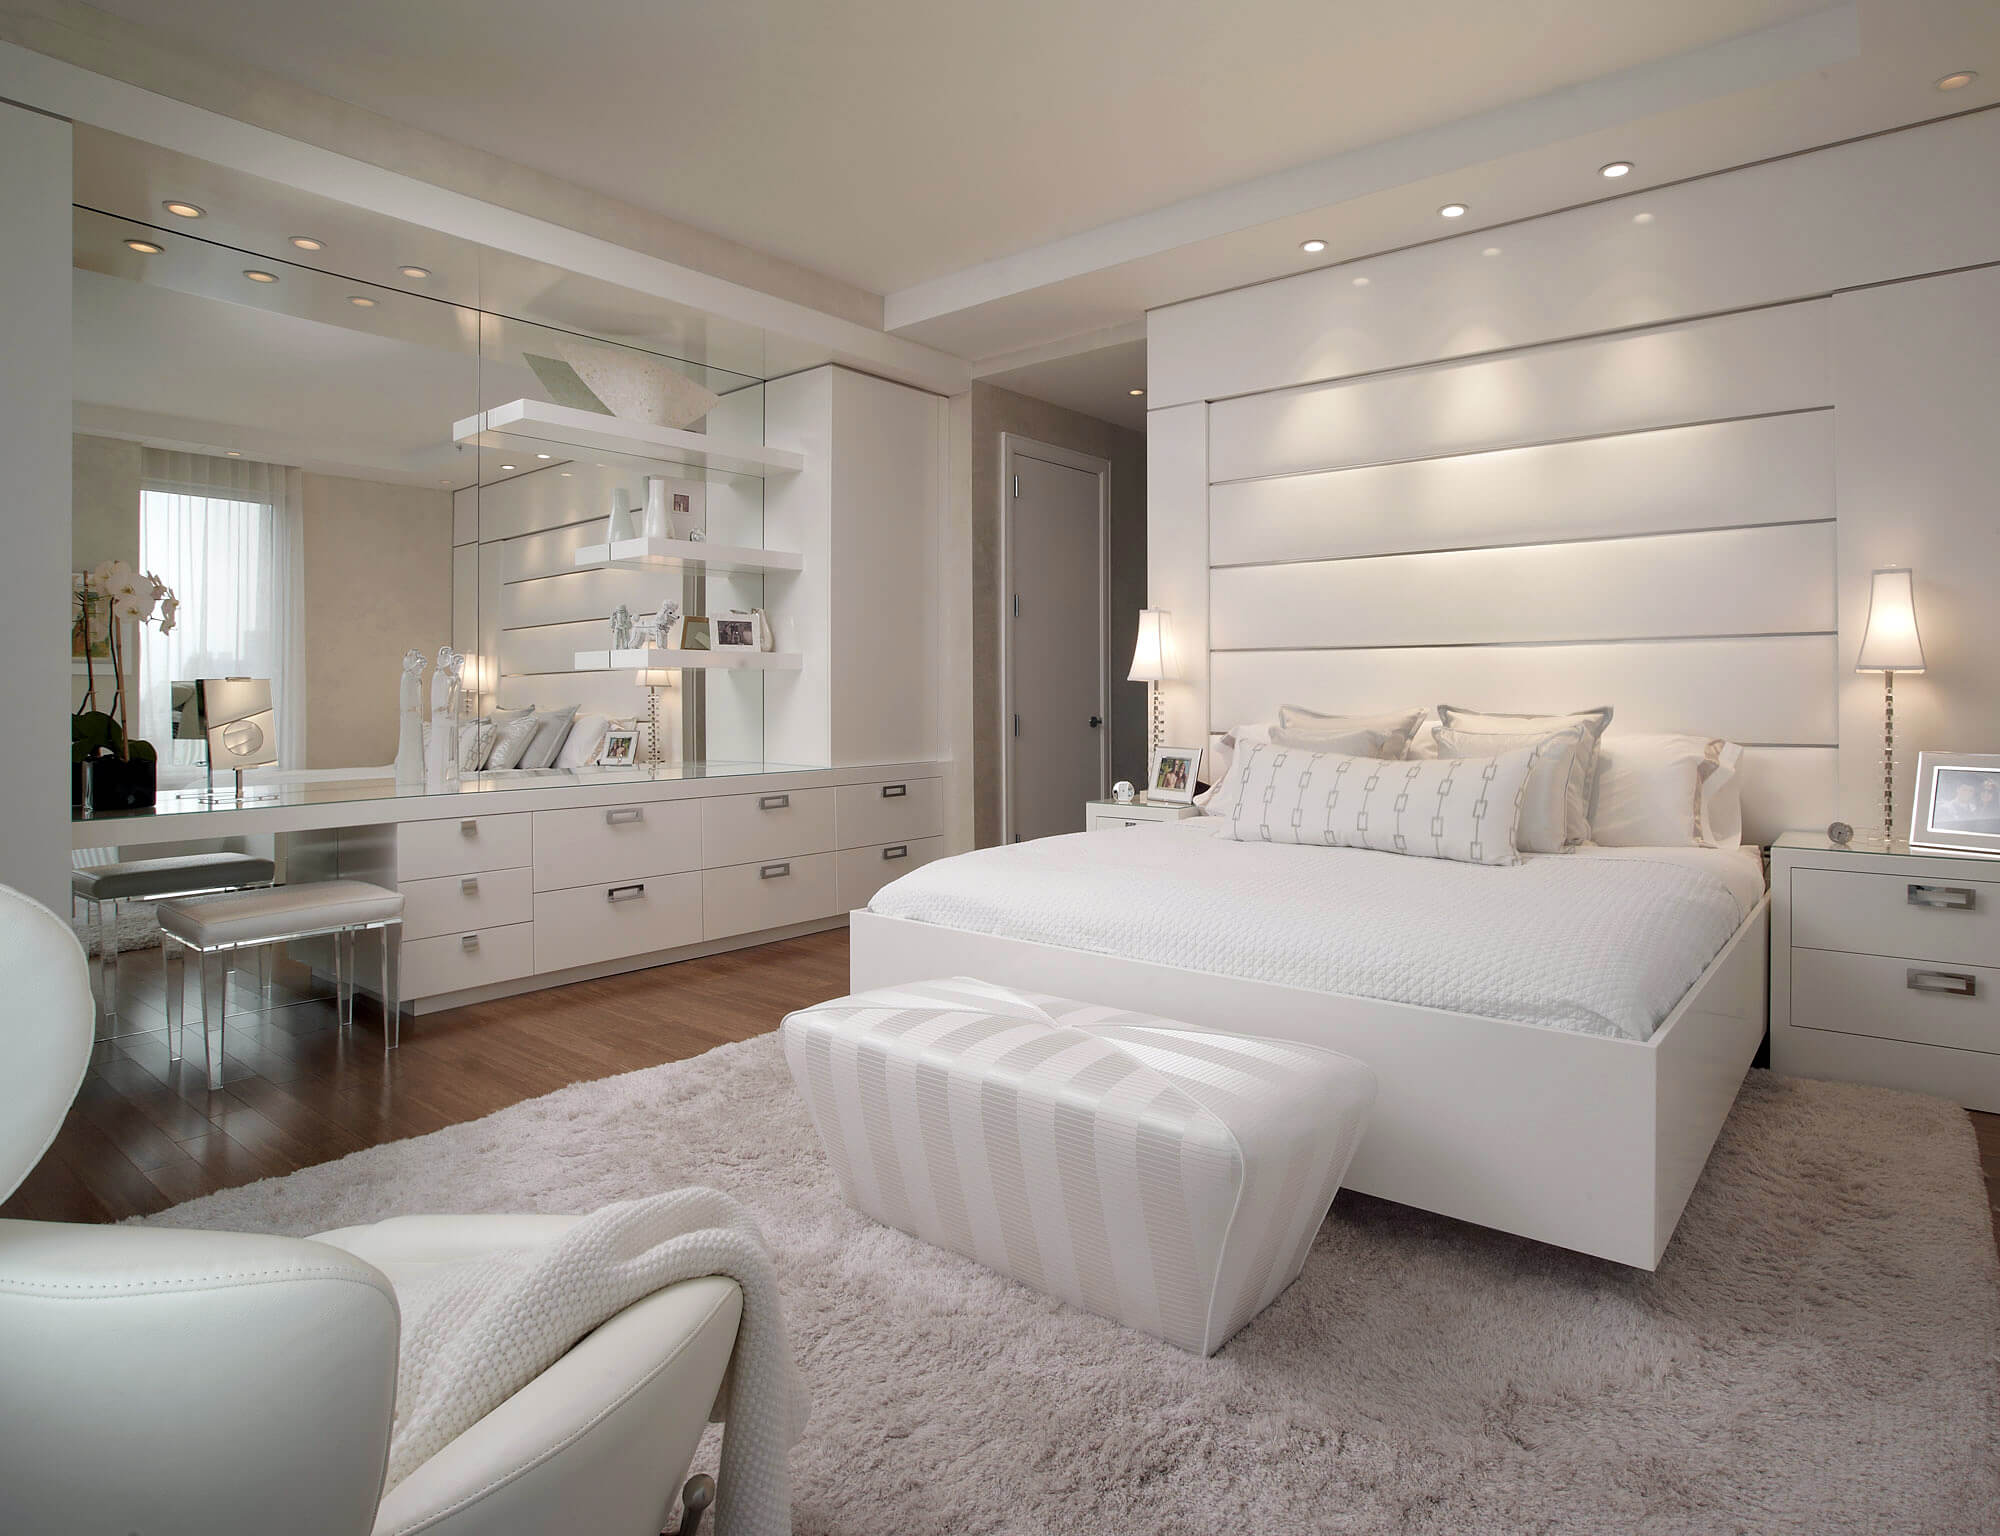 bedroom color trends to follow this year - Bedrooms With Color